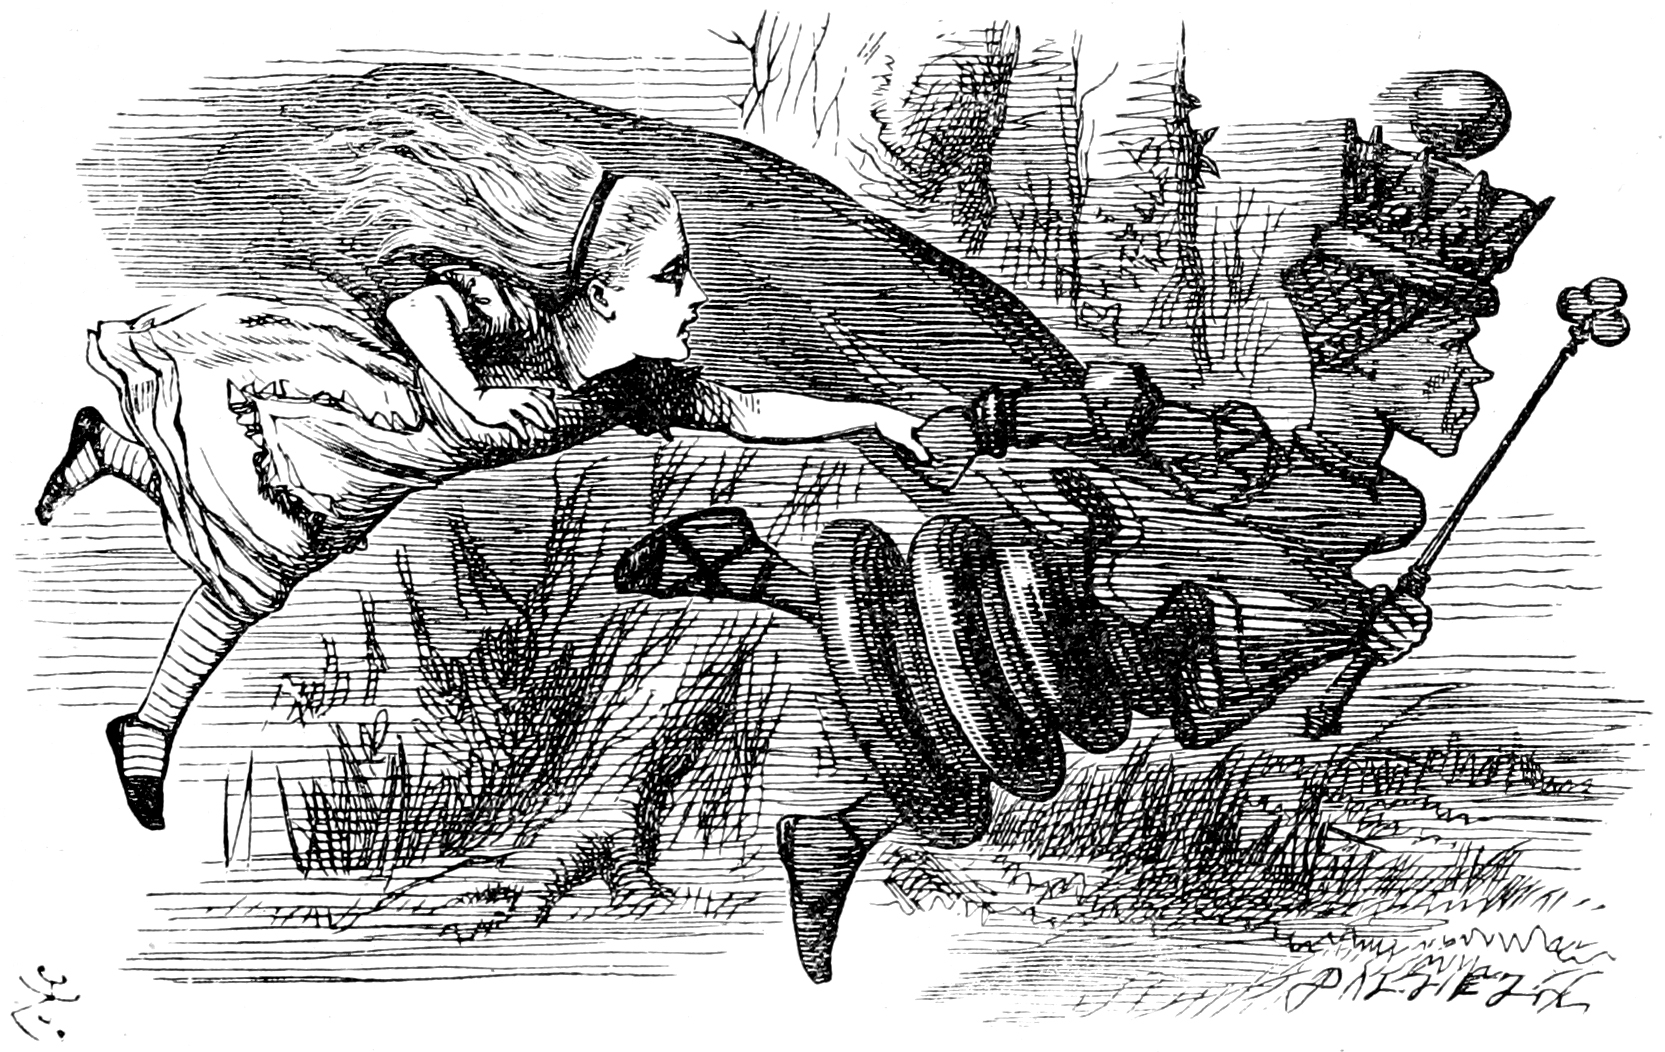 The Red Queen shows Alice how fast you have to run just to keep up. Drawing by John Tenniel, in the public domain.